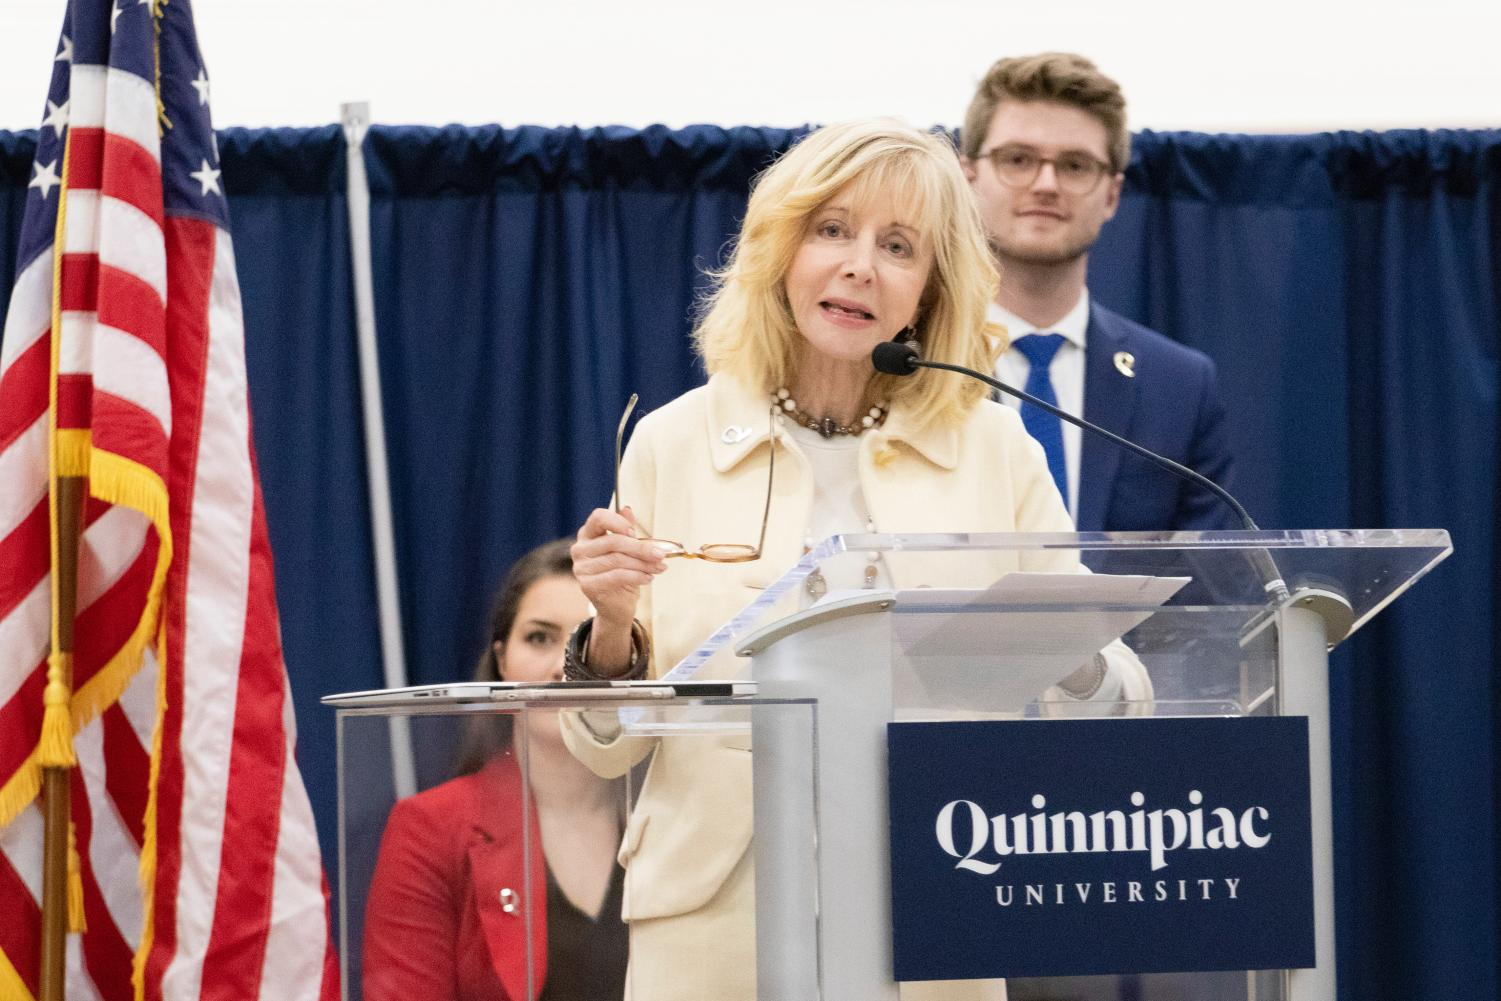 Judy Olian focused on construction and community in her speech.